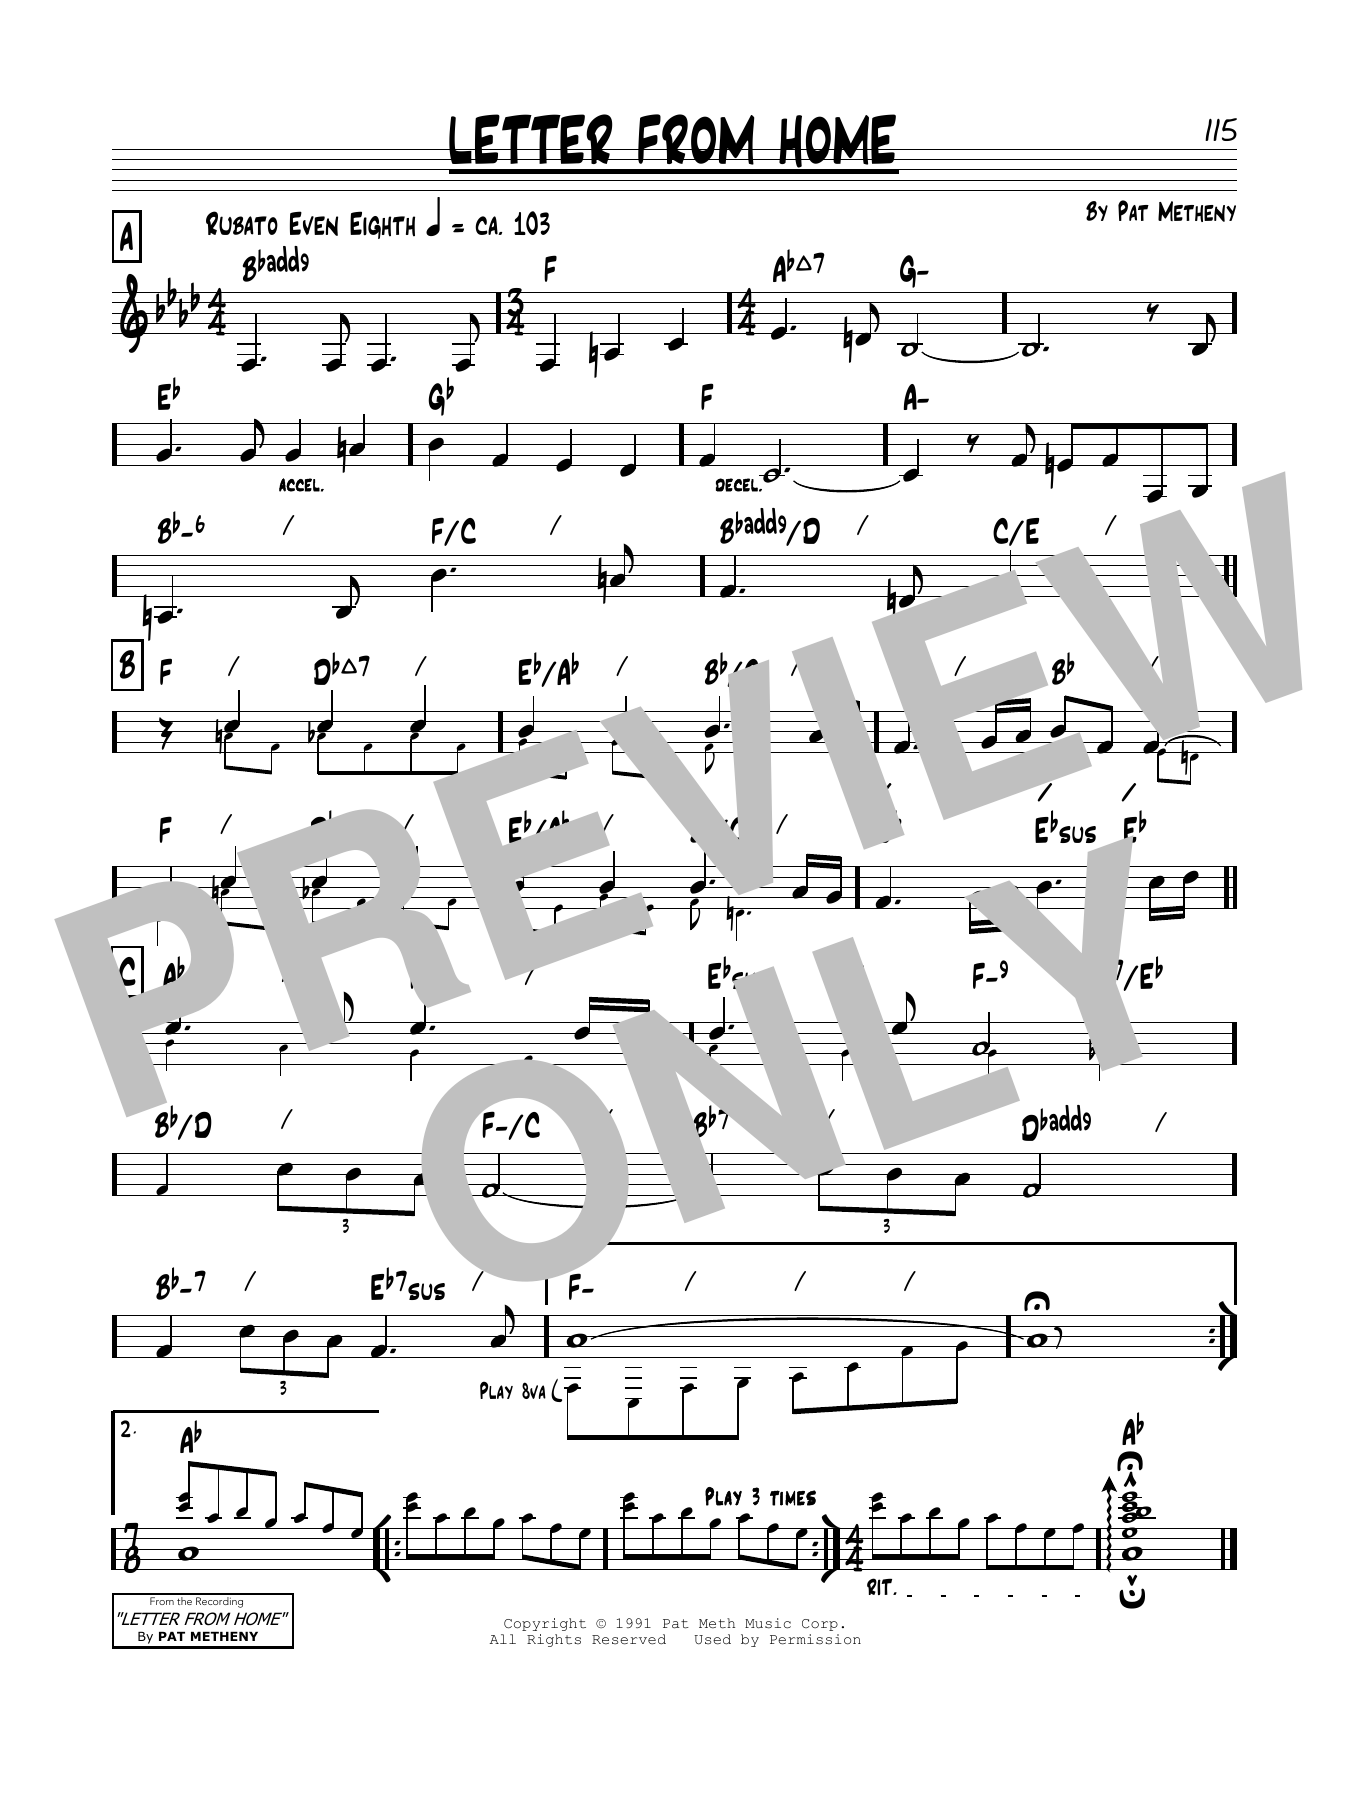 Pat Metheny Letter From Home sheet music notes and chords. Download Printable PDF.